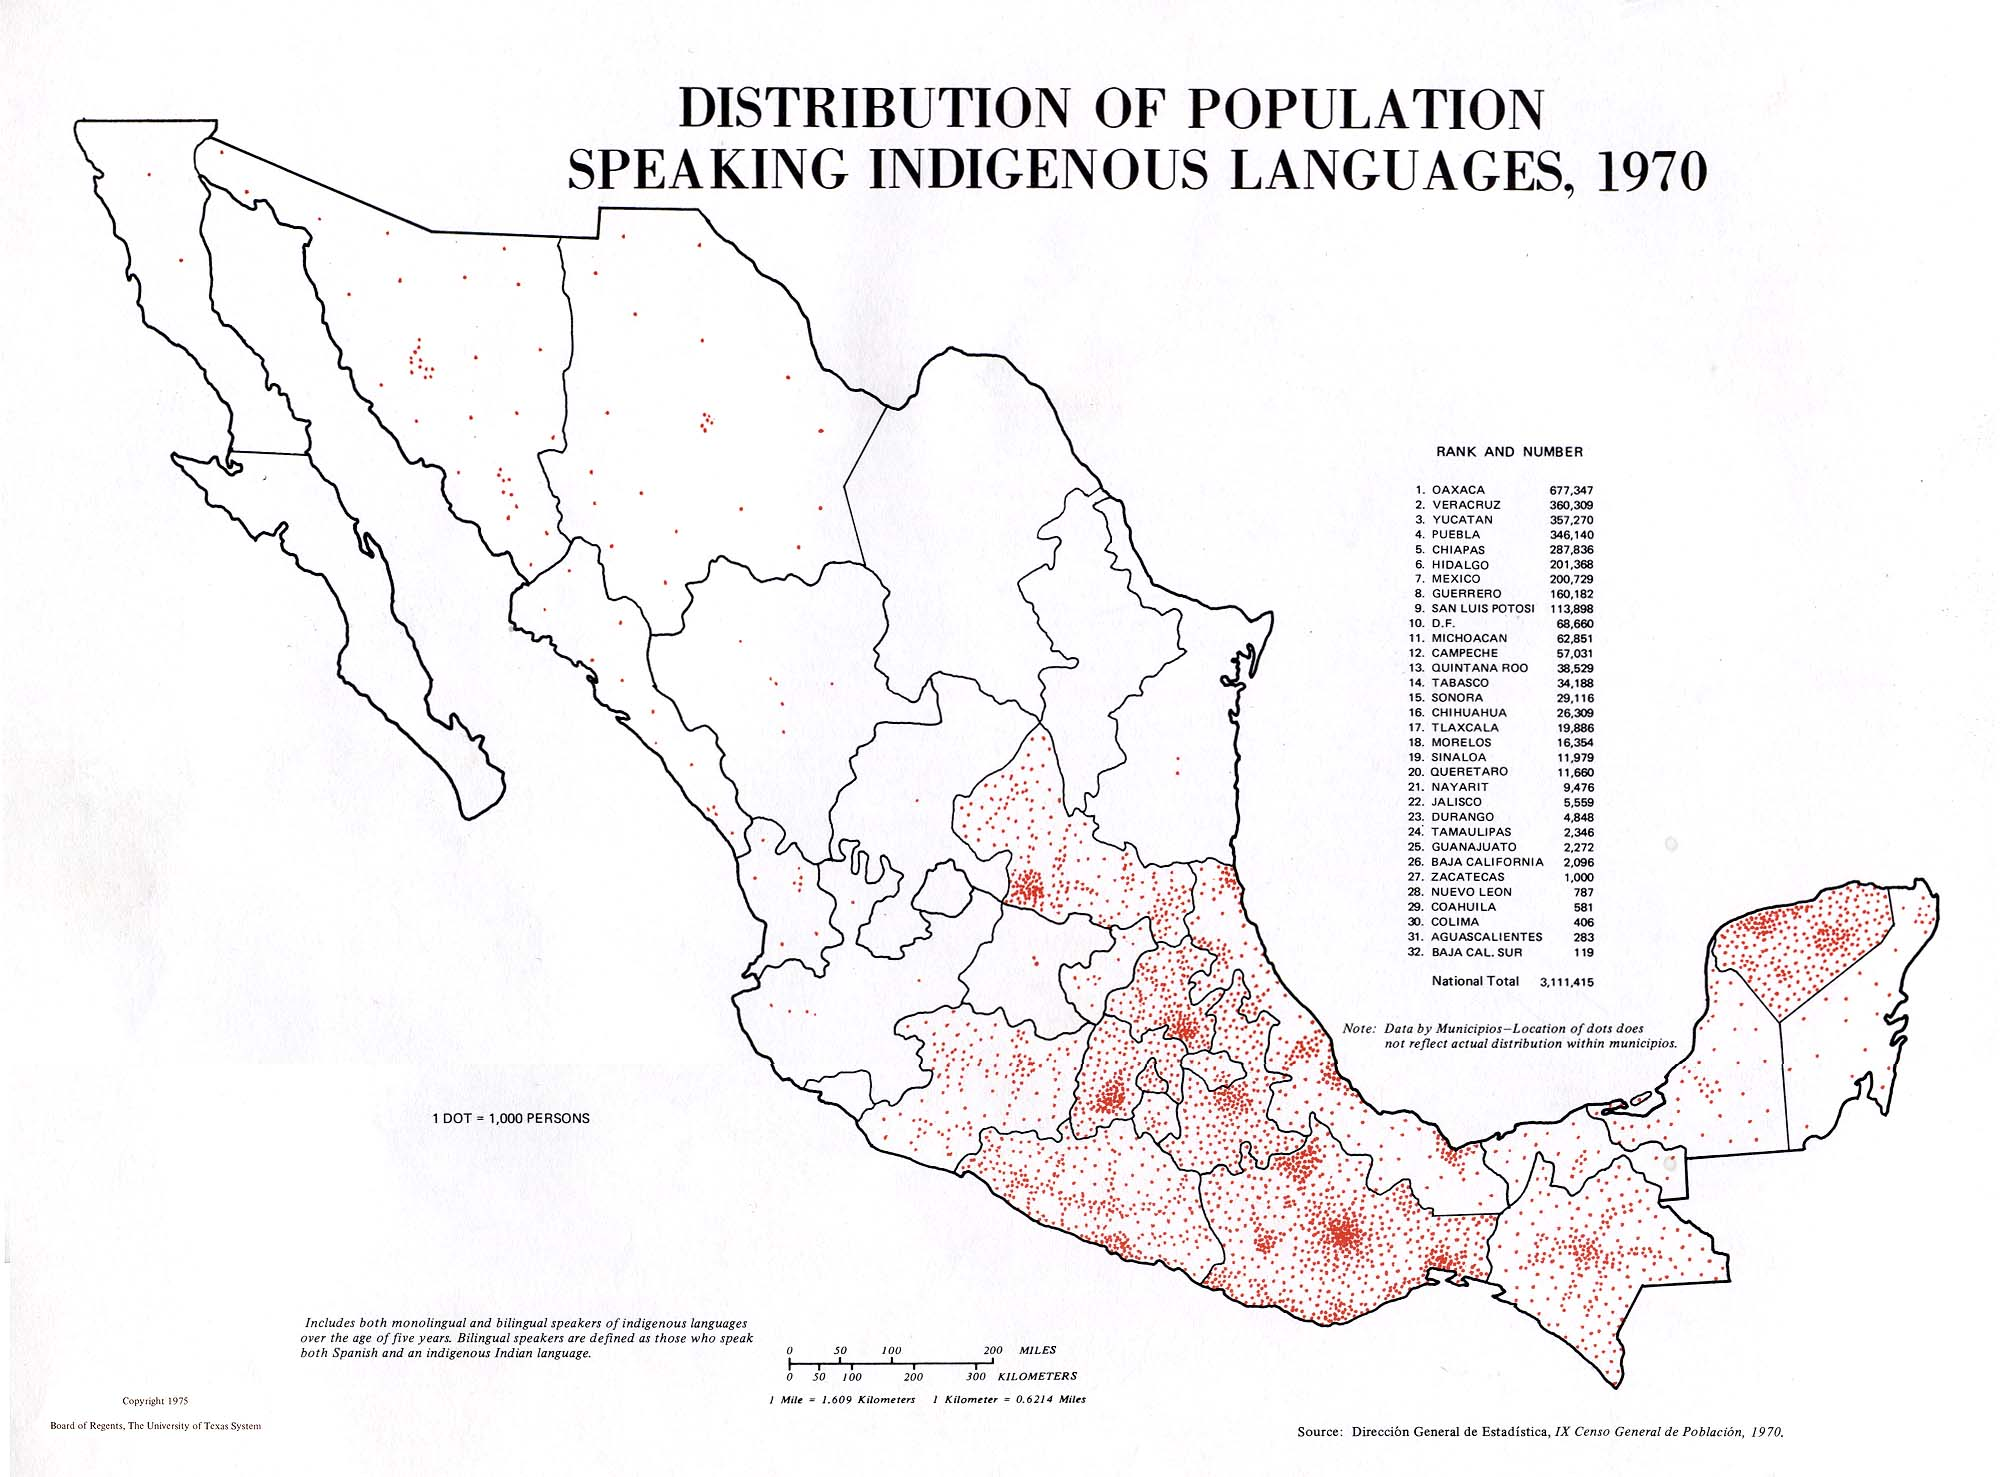 Indigenous Languages, Mexico 1940, 1970